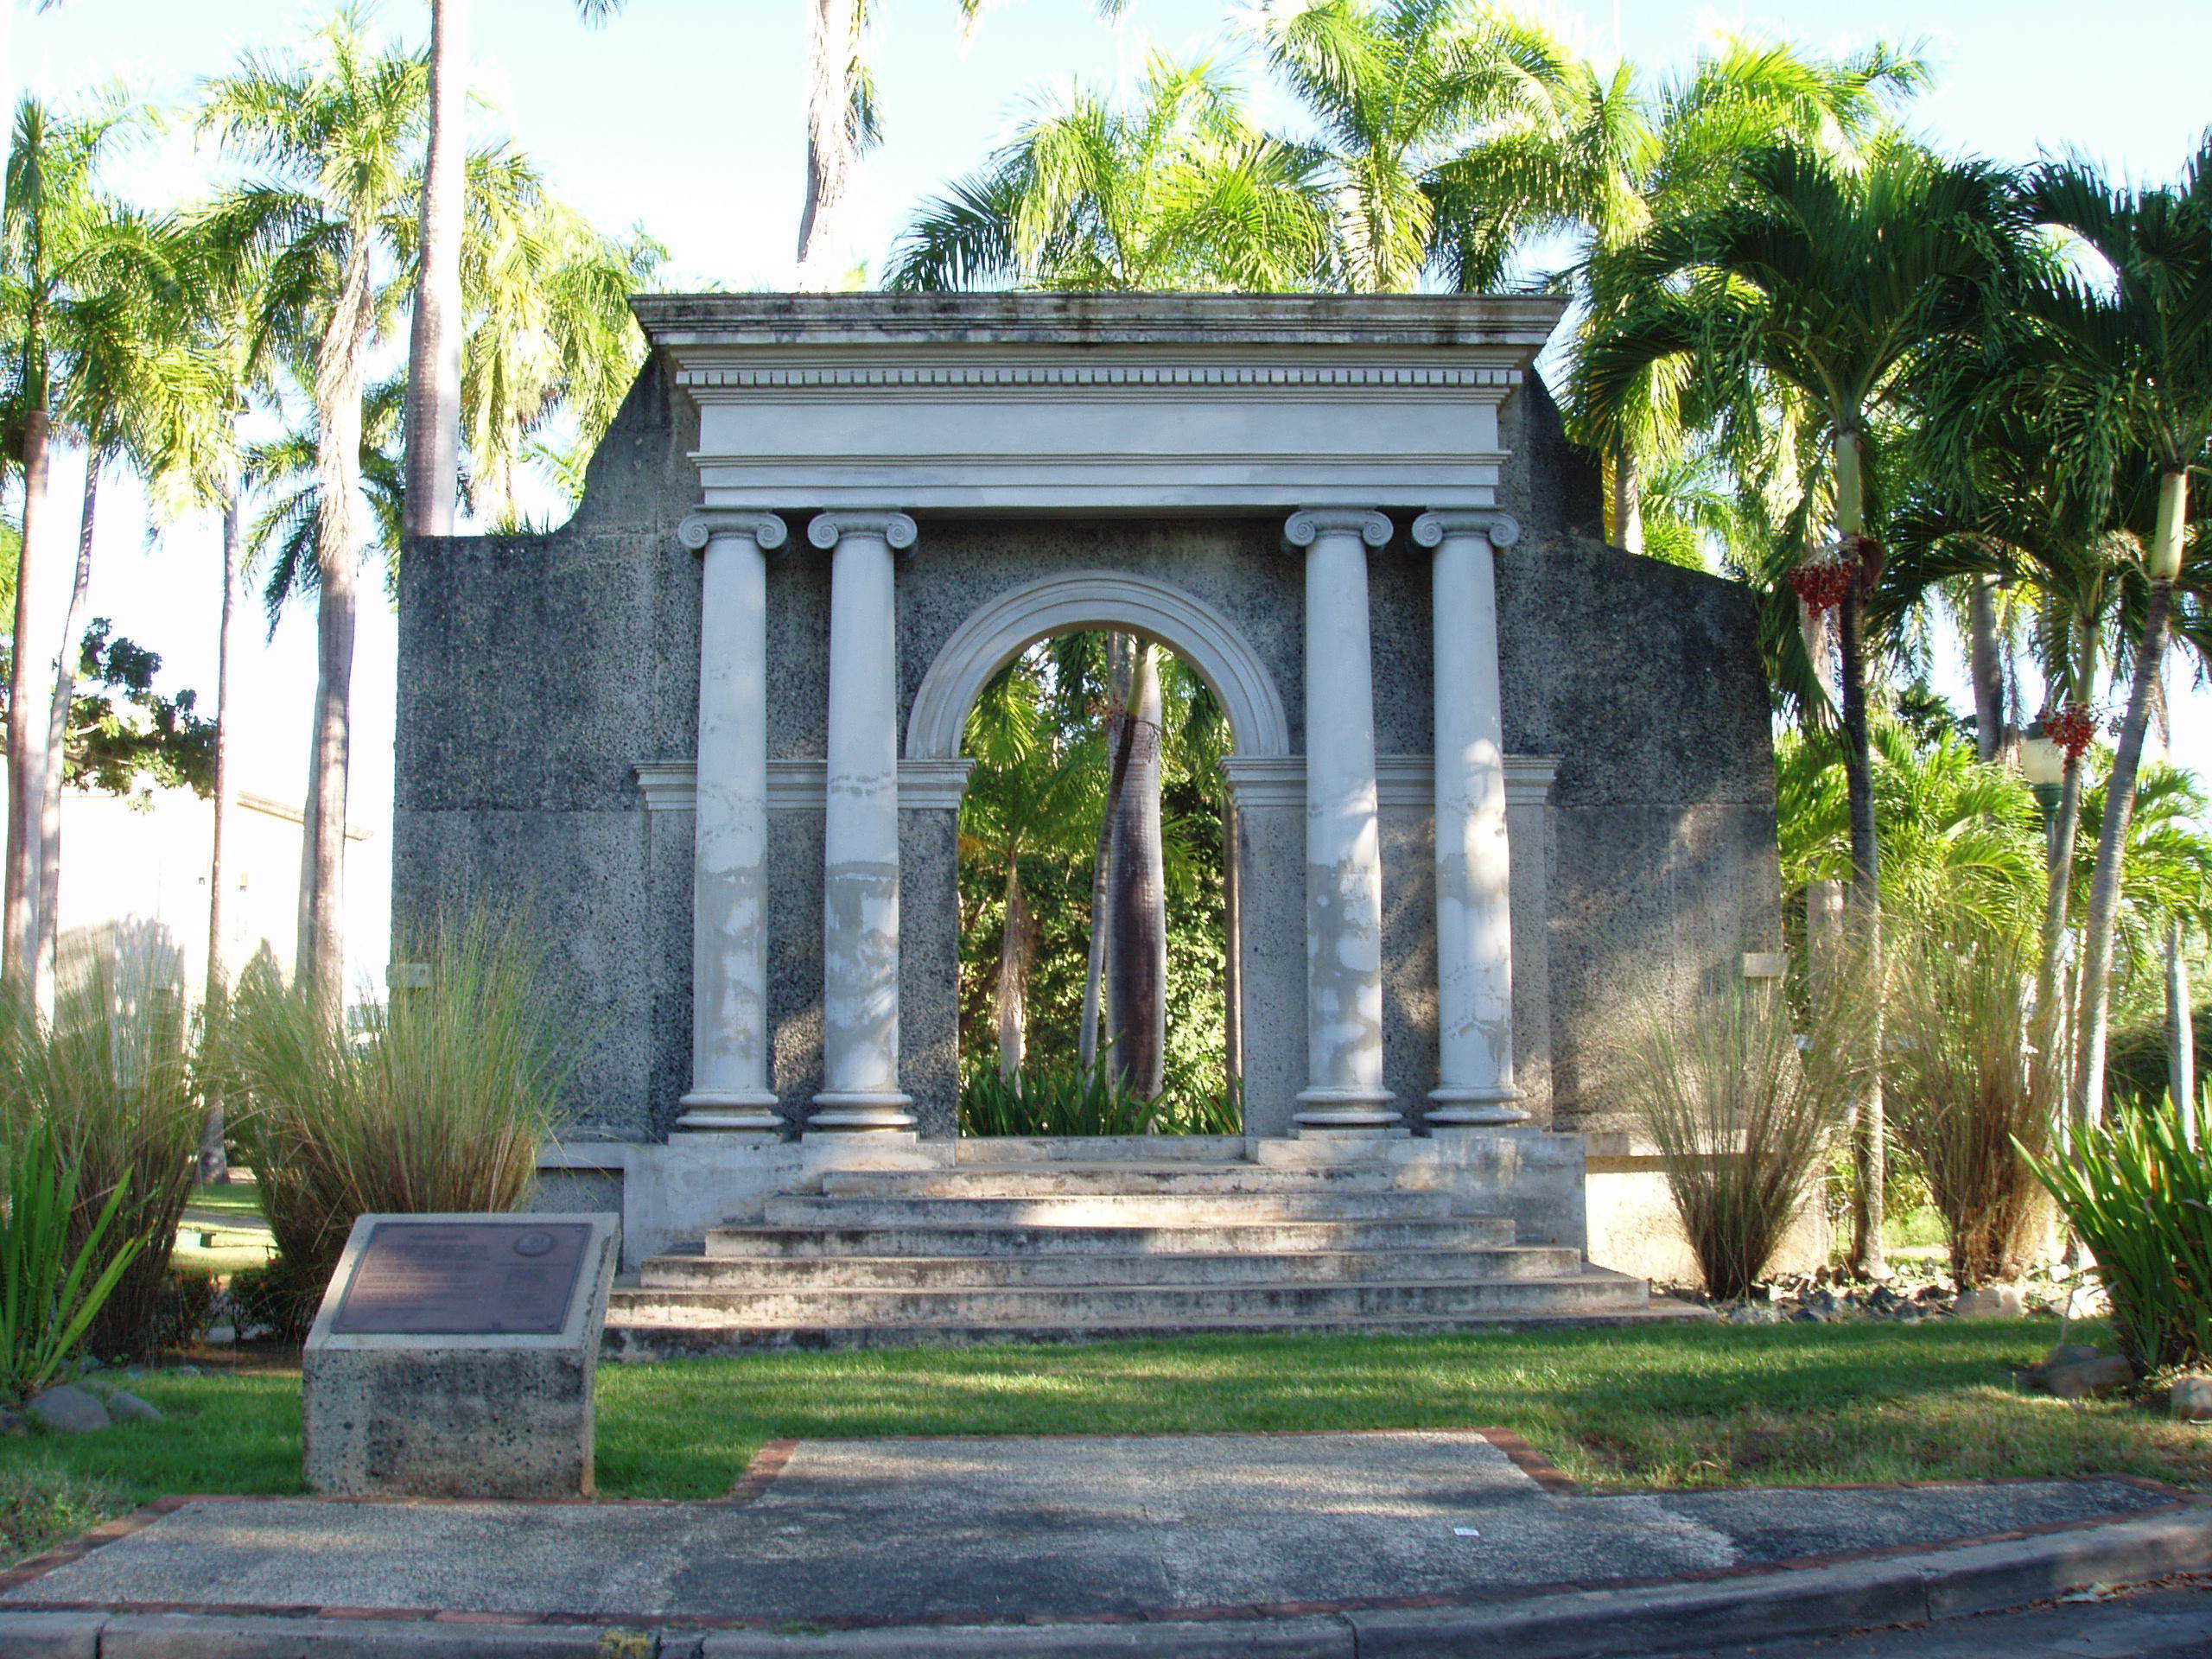 The portico at University of Puerto Rico at Mayaguez campus, pictured here before Hurricane Maria caused infrastructural damage. (credit: UPR_RUM via Flickr Wikimedia Commons)